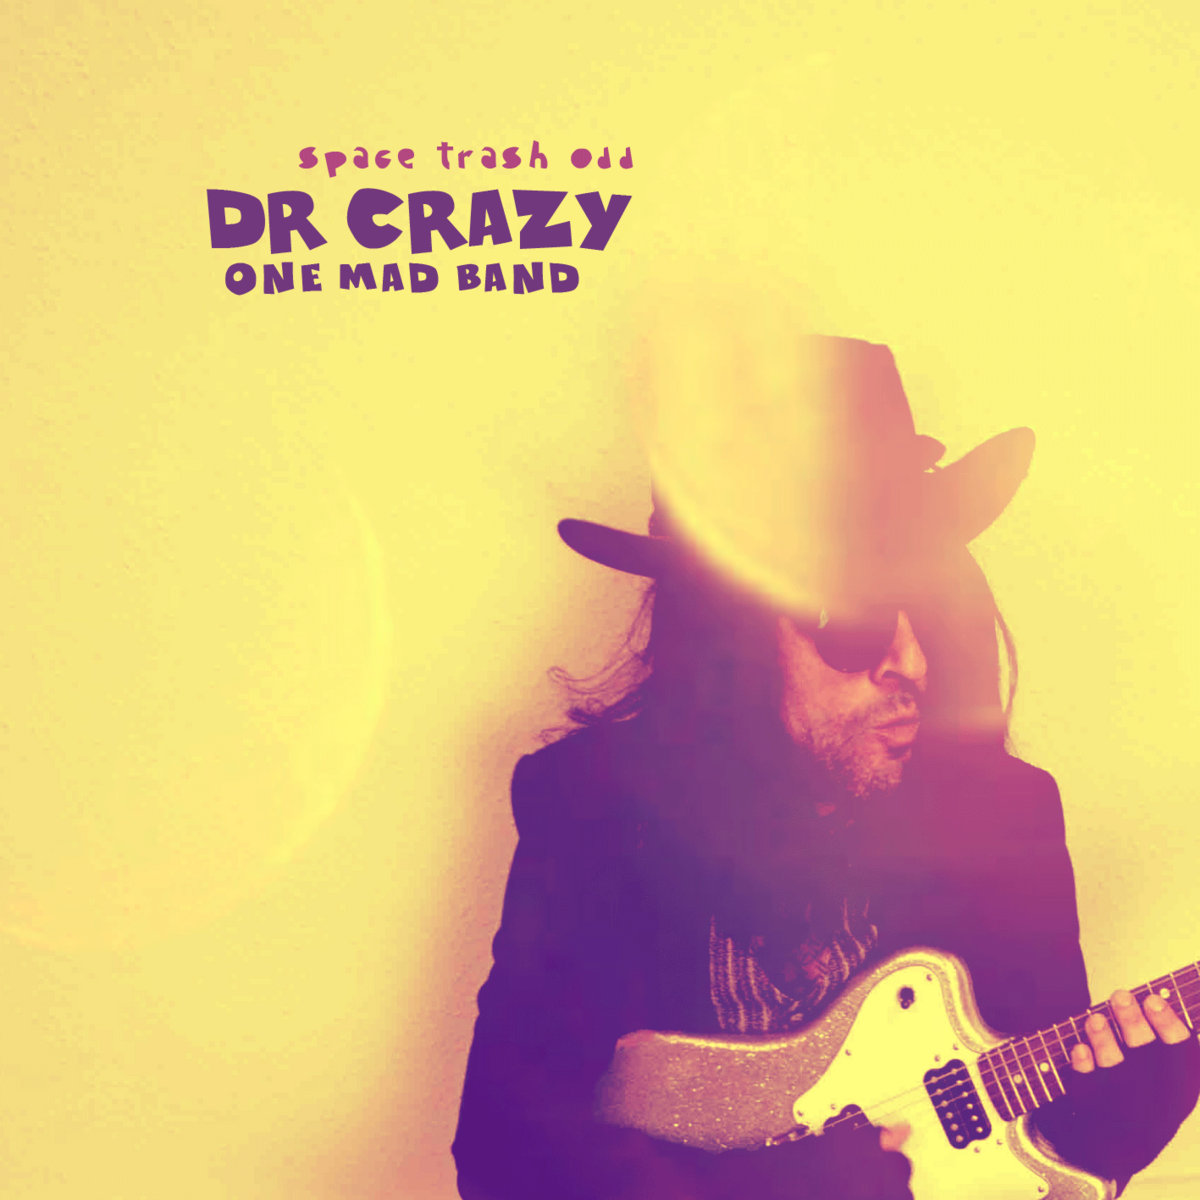 Dr. Cracy One Mad Band